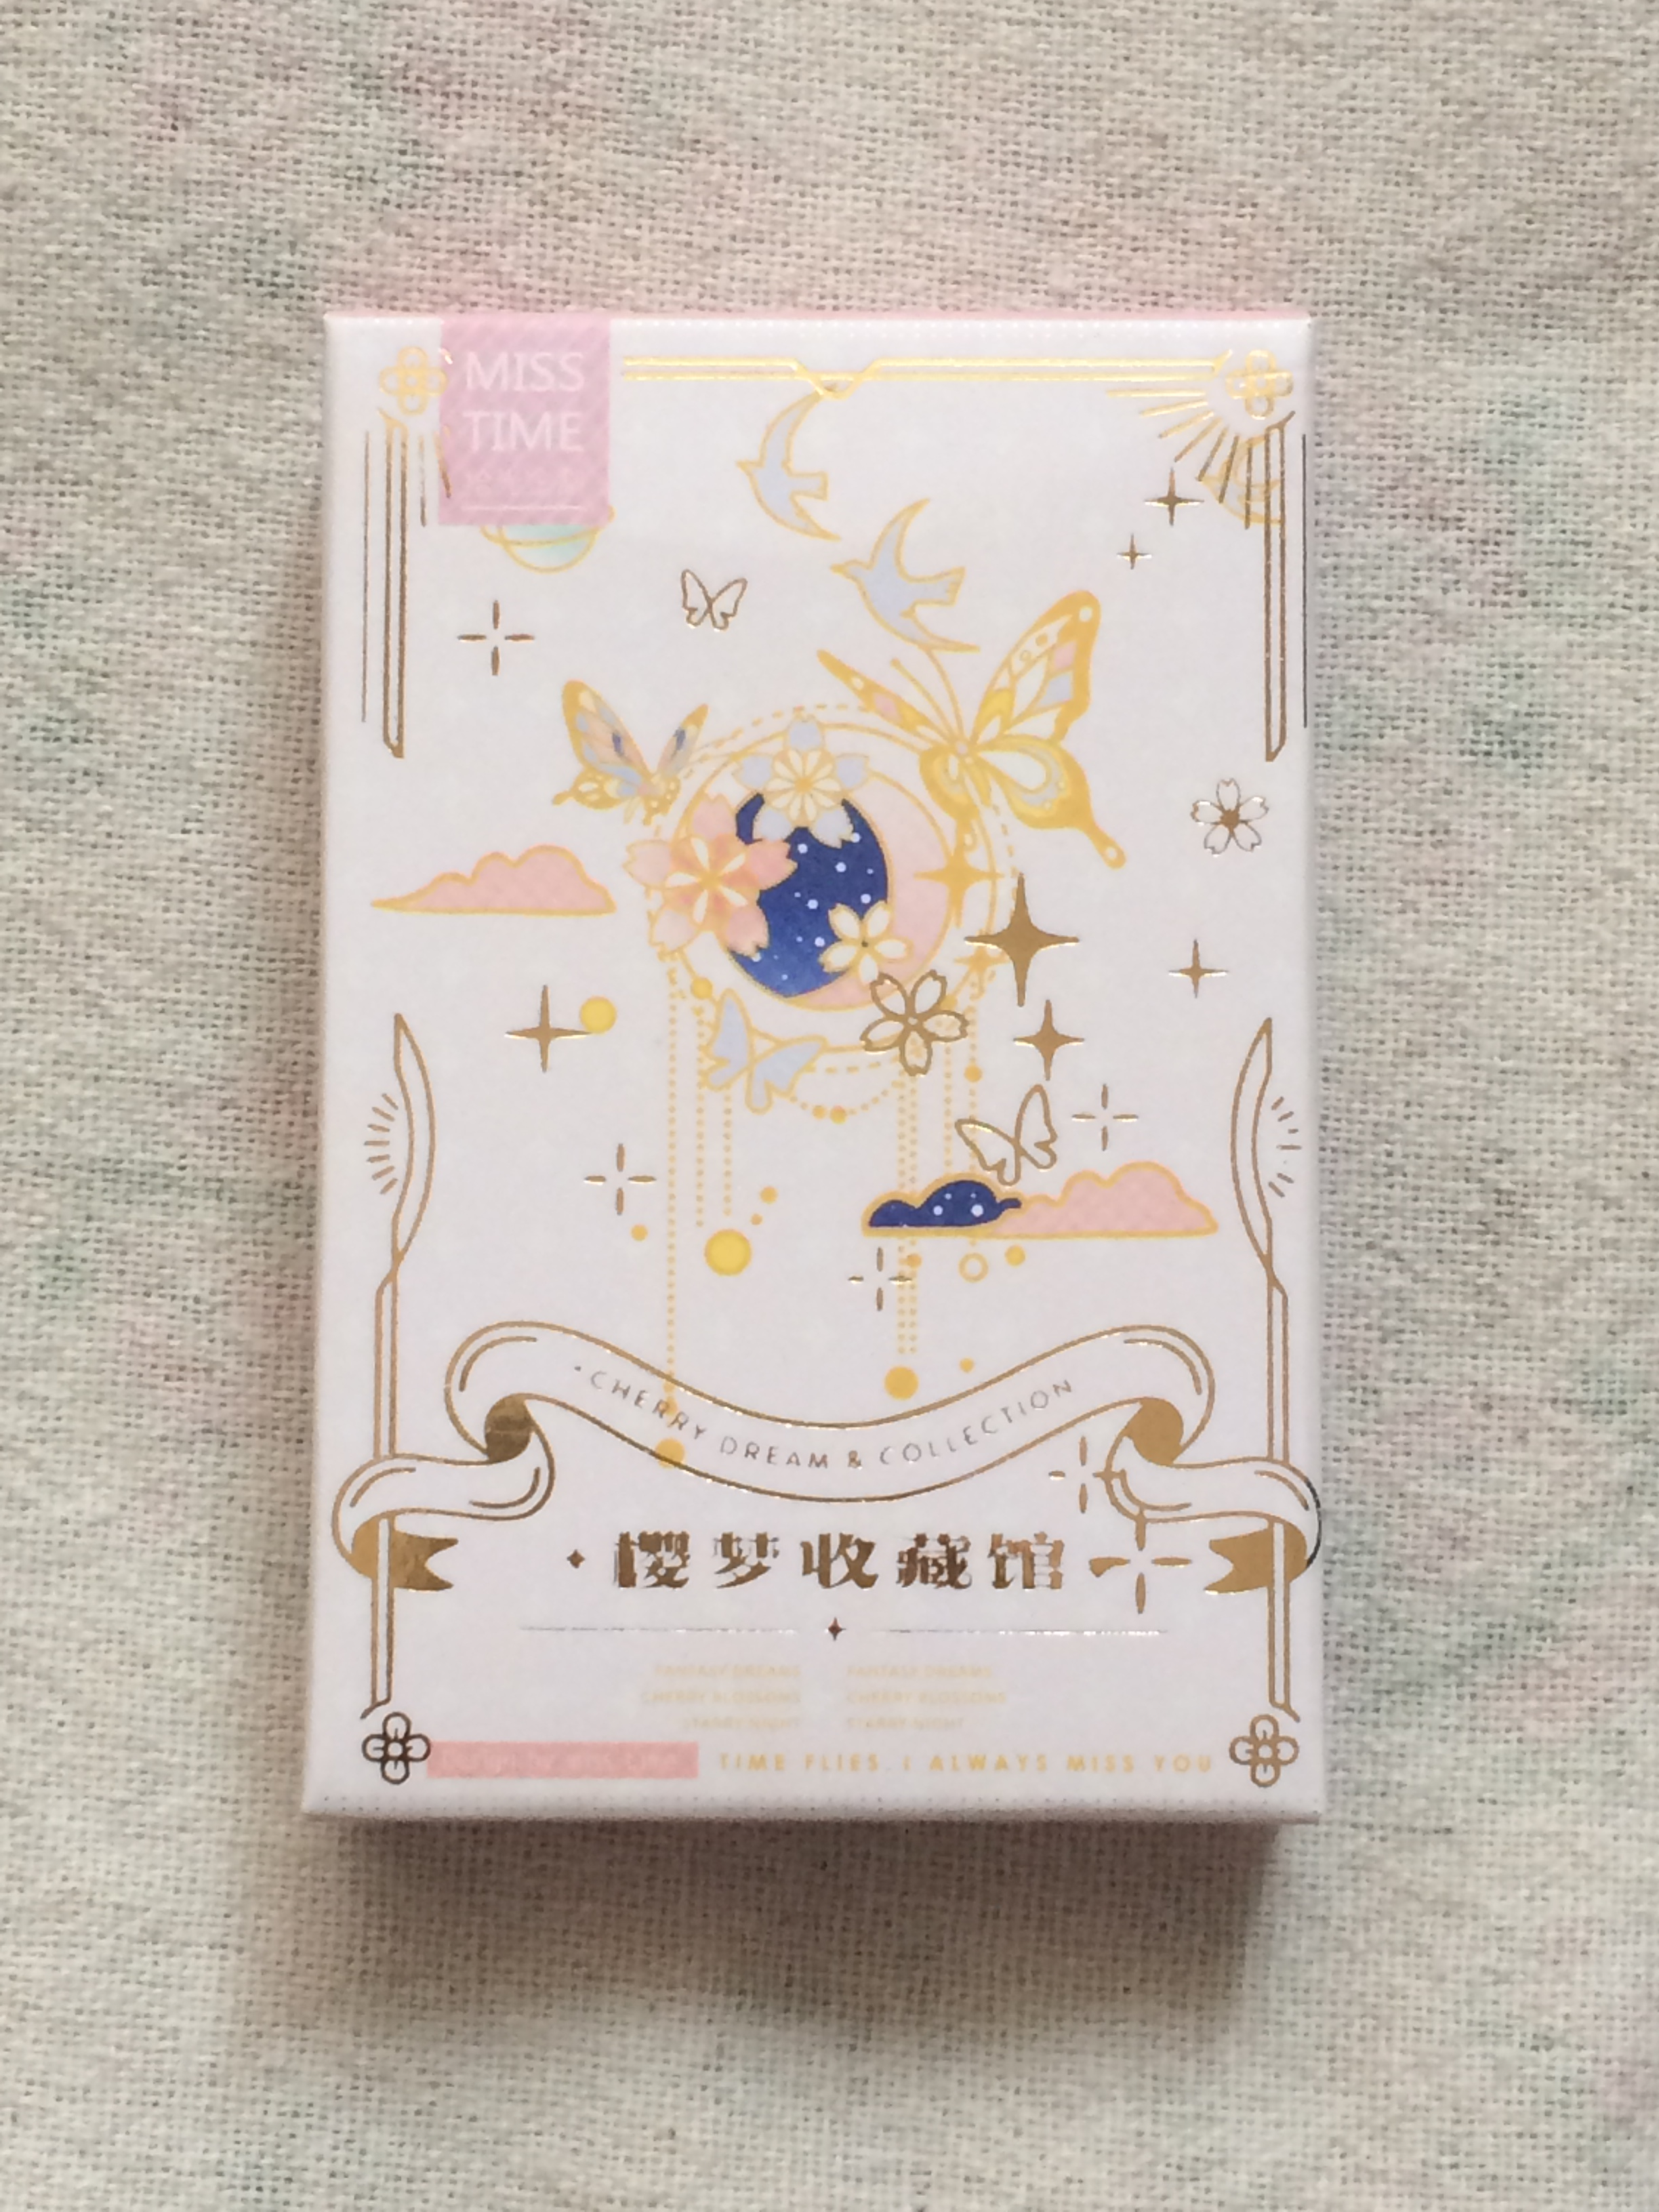 52mm*80mm Flower Dream Paper Greeting Card Lomo Card(1pack=28pieces)